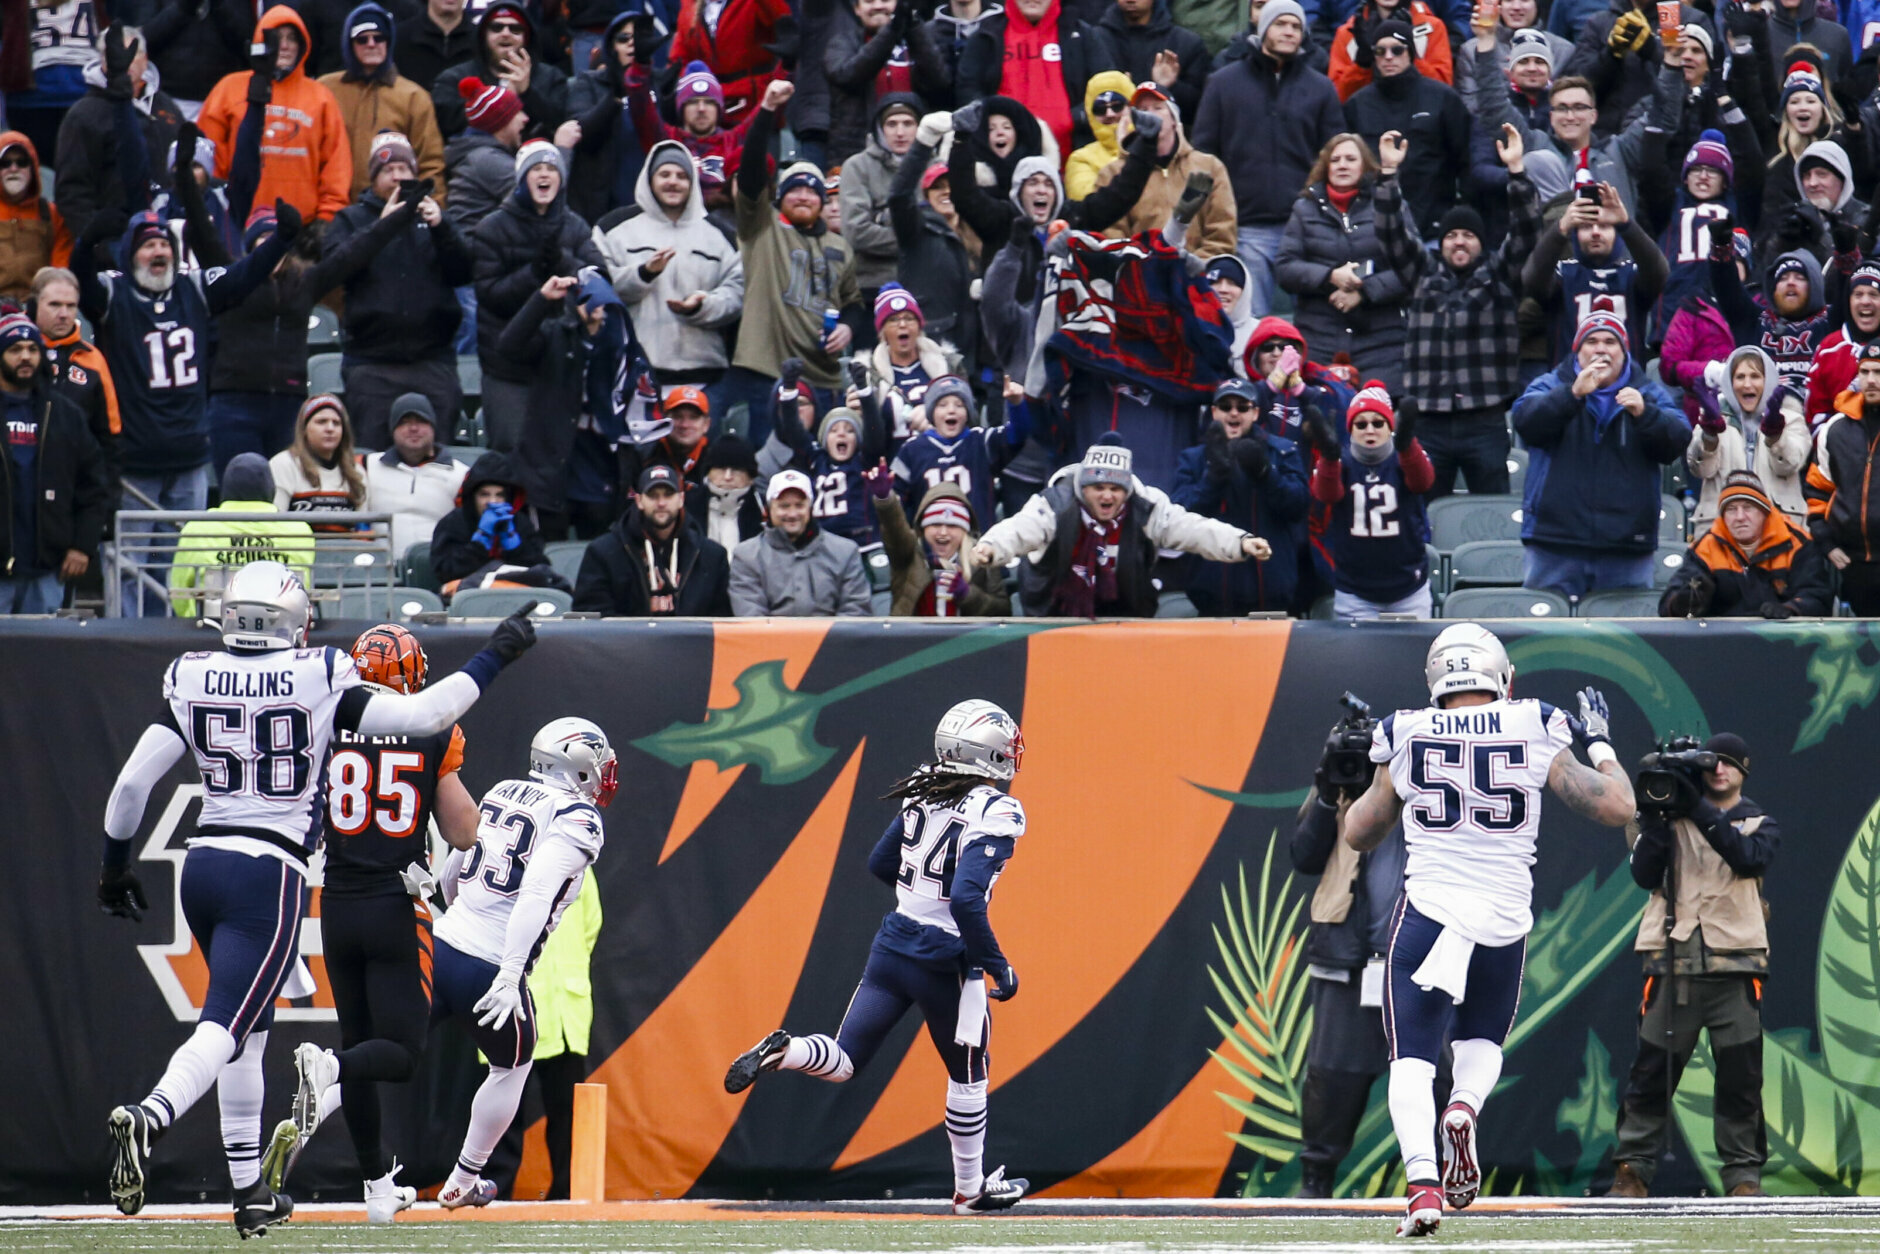 "<p><b><i>Patriots 34</i></b><br /> <b><i>Bengals 13</i></b></p> <p>New England certainly didn&#8217;t need to cheat to beat Cincinnati, posting their highest scoring output since Week 6 and clinching a playoff berth for the 11th straight season. But of course, that won&#8217;t stop the NFL from dragging the Patriots through <a href=""https://profootballtalk.nbcsports.com/2019/12/15/spygate-2-investigation-closer-to-beginning-than-end/"" target=""_blank"" rel=""noopener"">another ridiculously-named investigation</a> into something blown completely out of proportion.</p>"